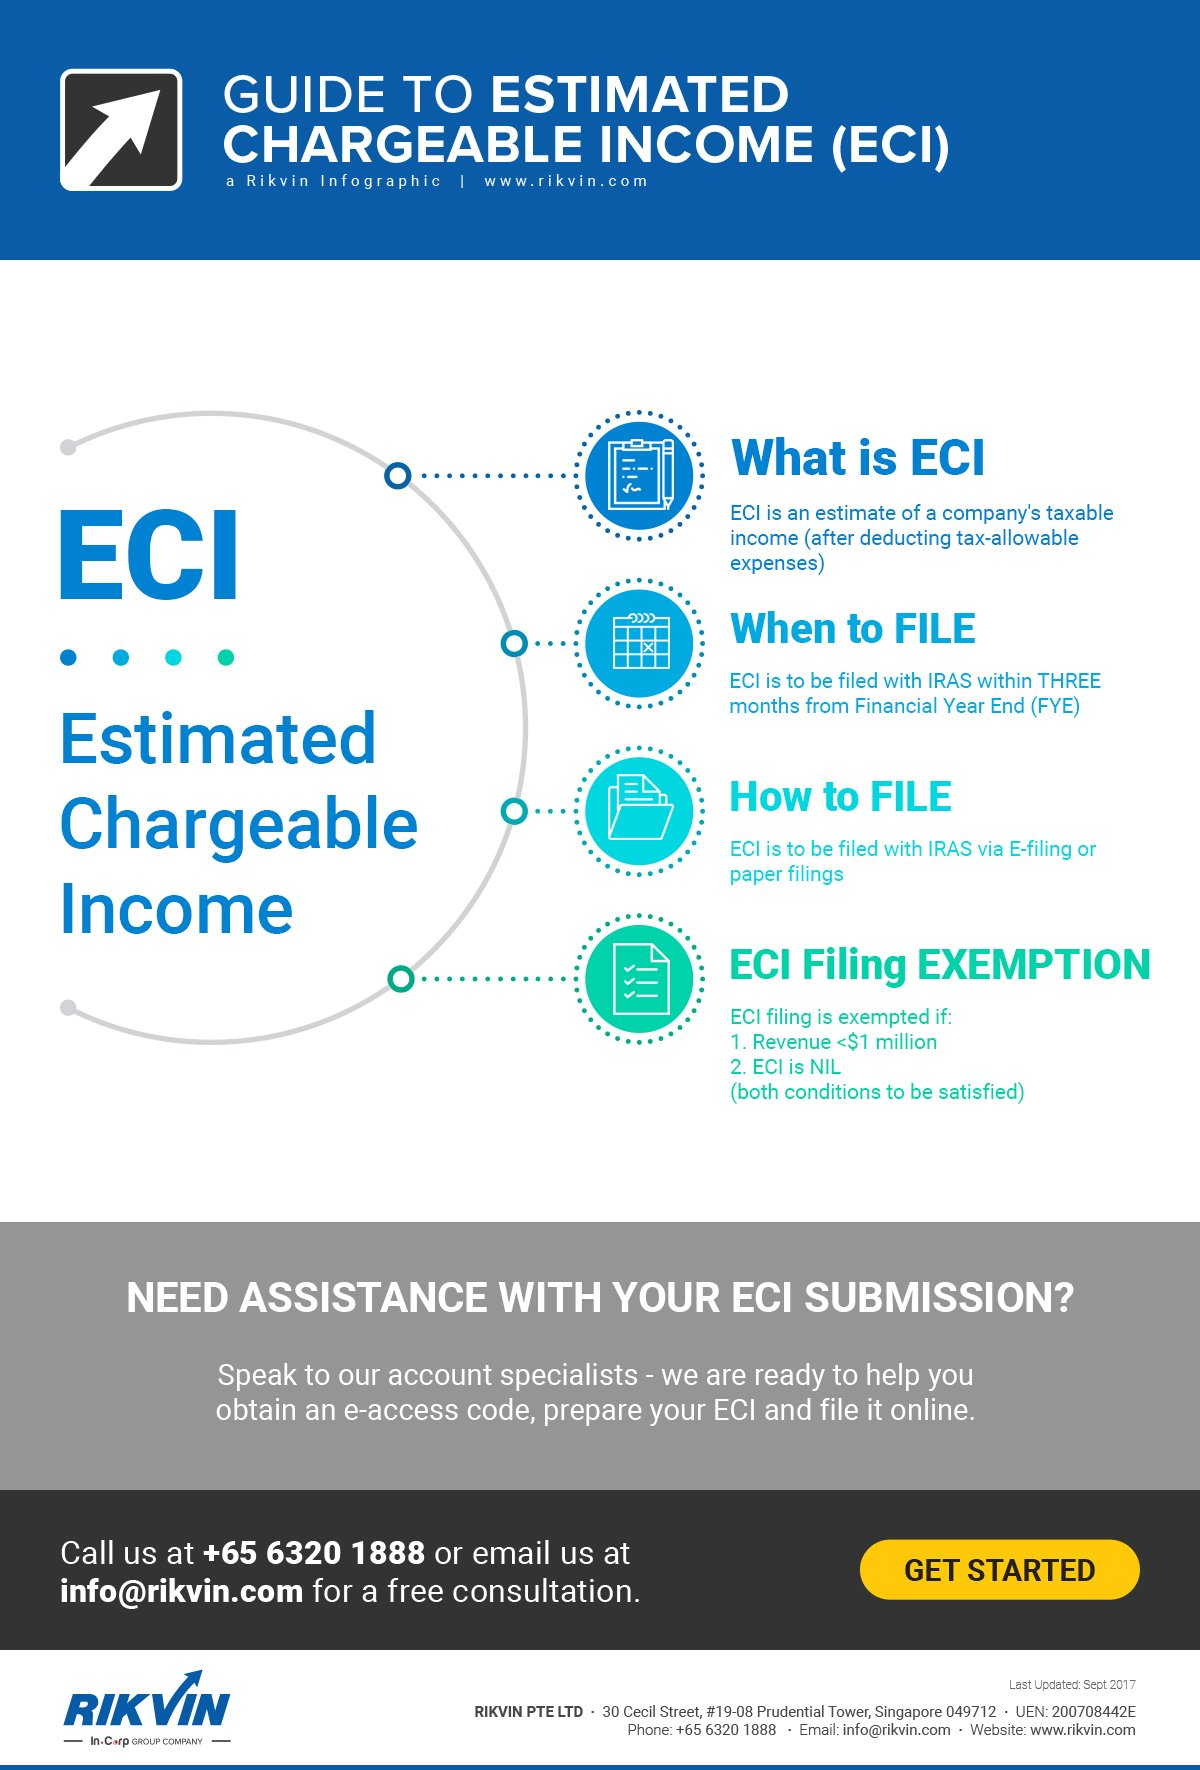 Guide to Estimated Chargeable Income (ECI)